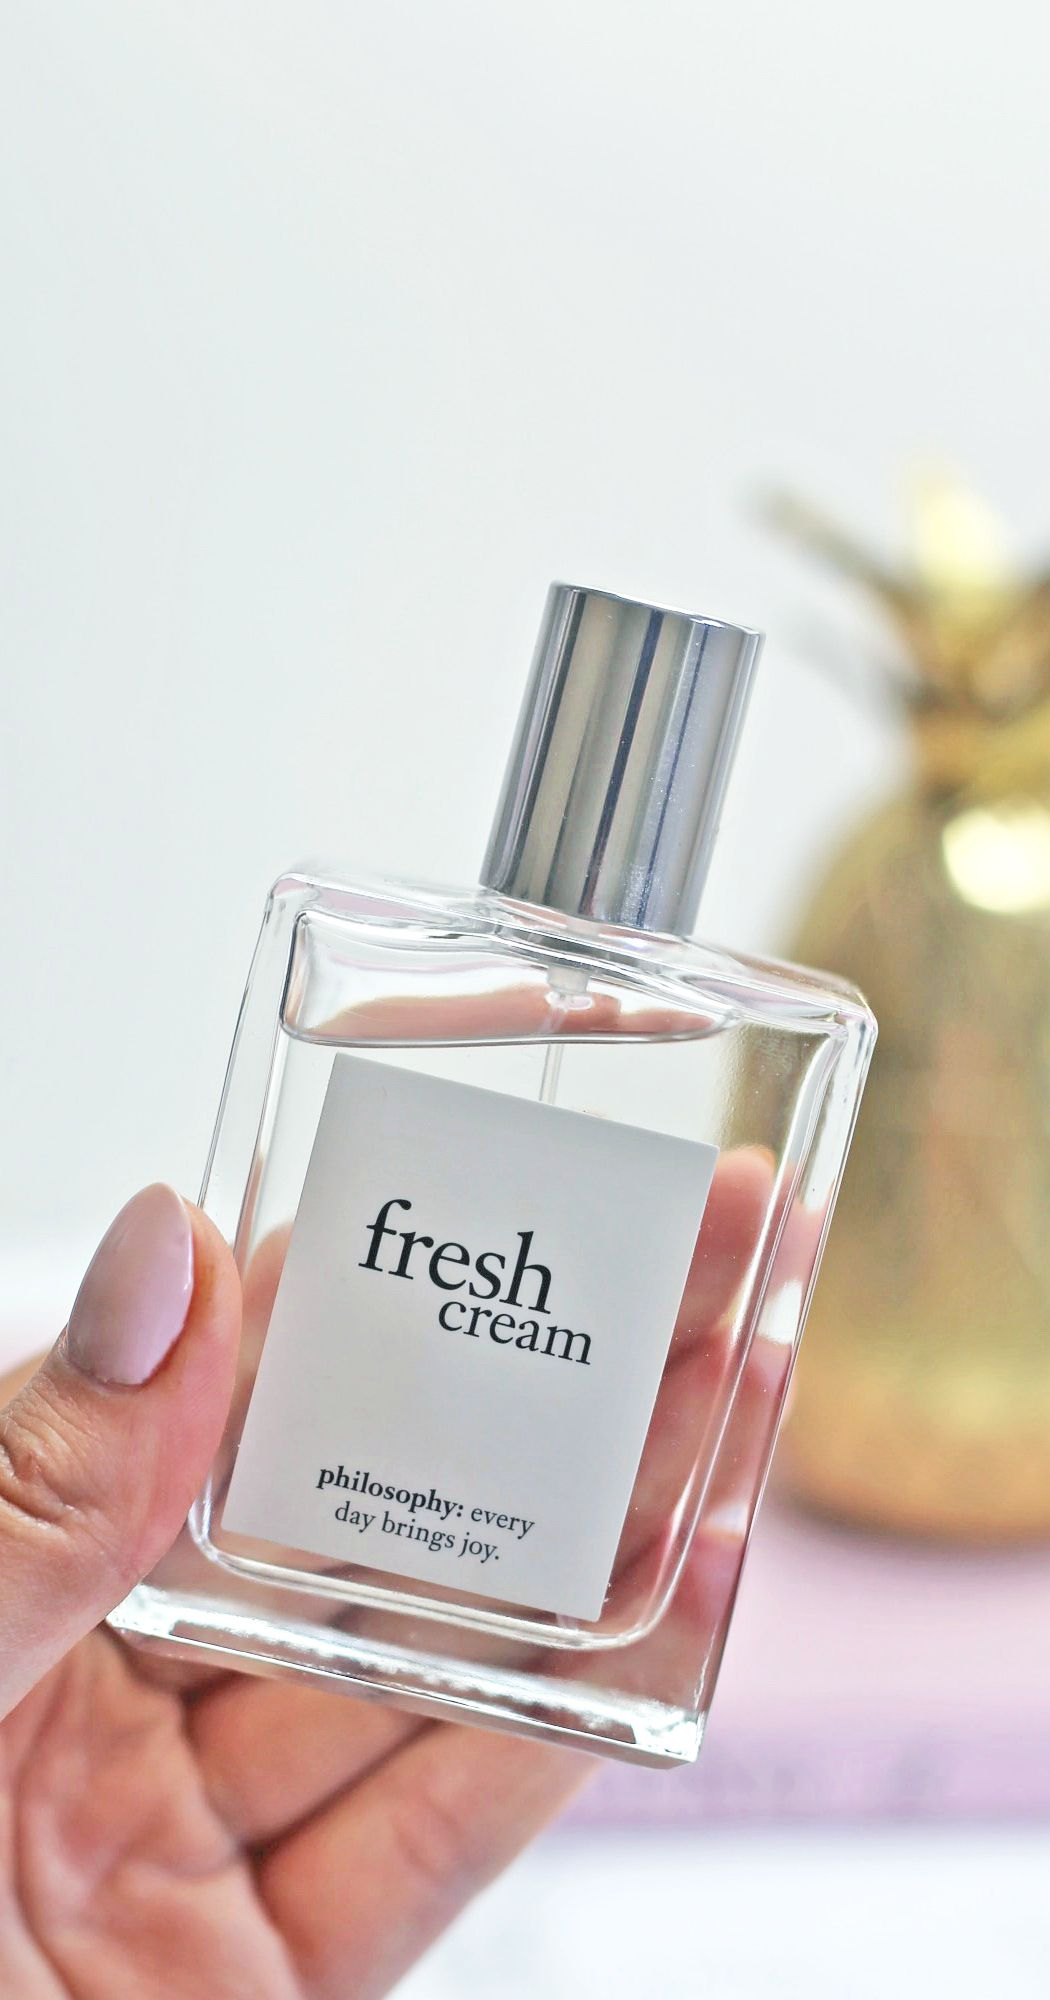 Y'all, this perfume is a must try! My absolute favorite @lovephilosophy scent!